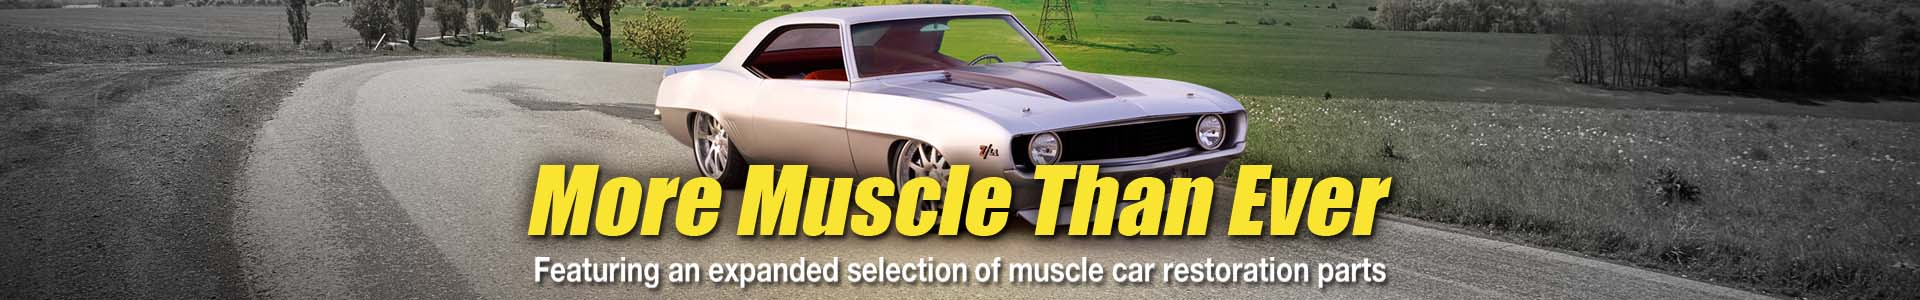 Check Out Speedway's Expanded Muscle Car Selection